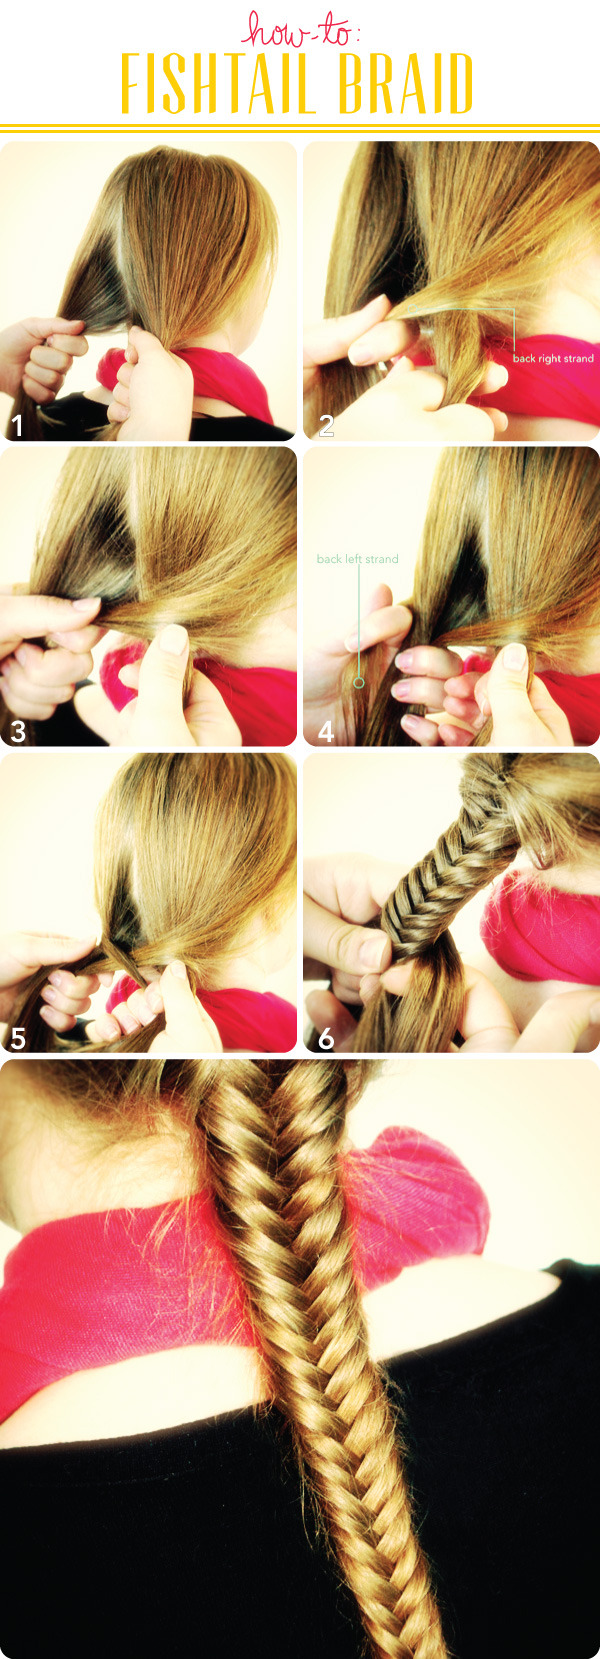 The Ultimate Fishtail Braid Tutorial and How-to Guide ... Fishtail Braid How To